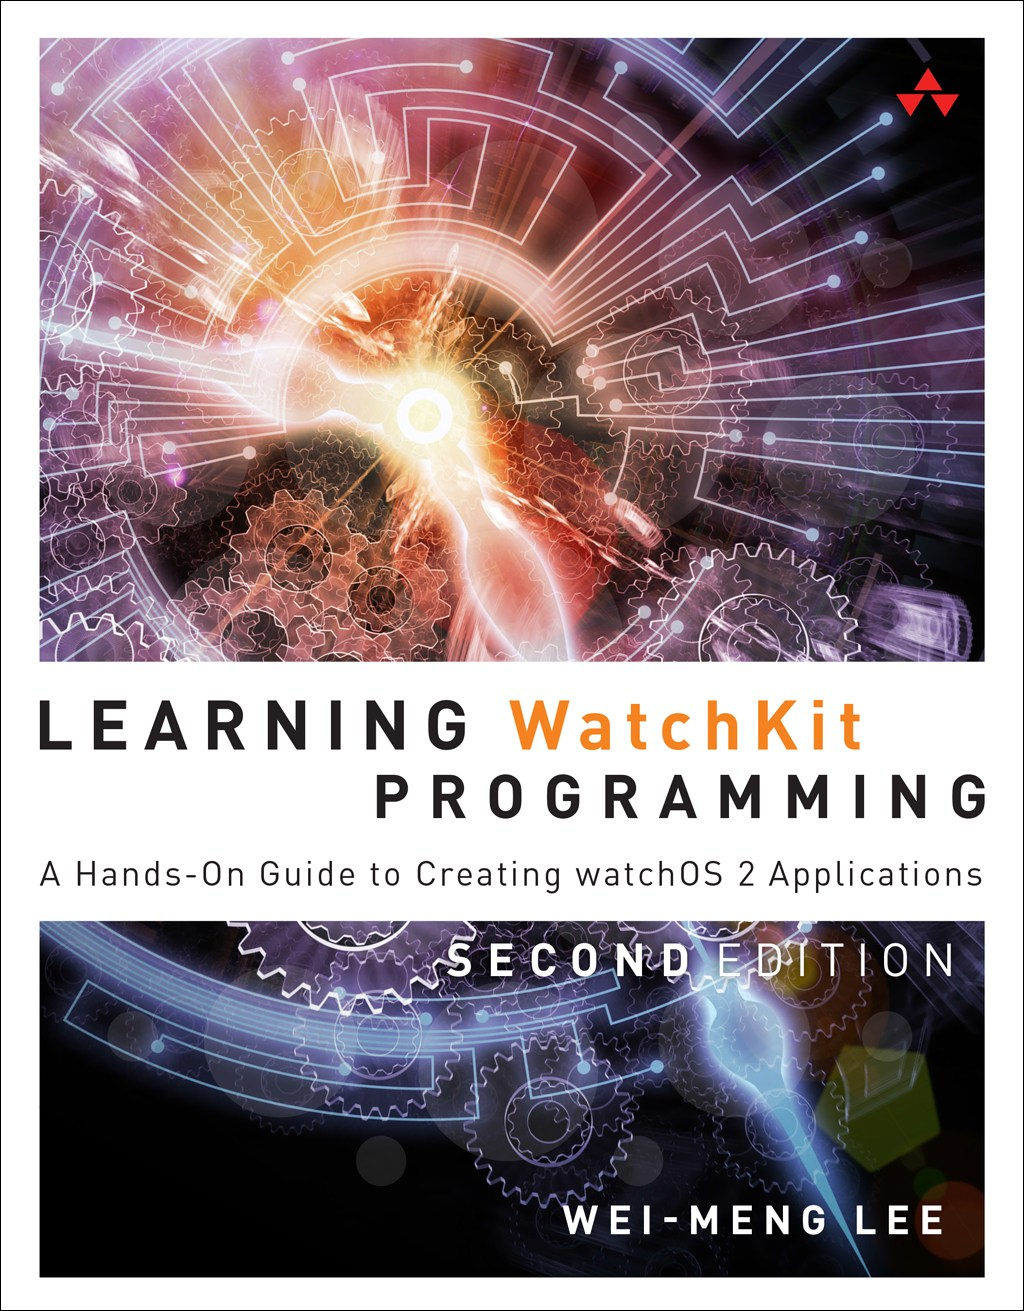 Learning WatchKit Programming: A Hands-On Guide to Creating watchOS 2 Applications, 2nd Edition